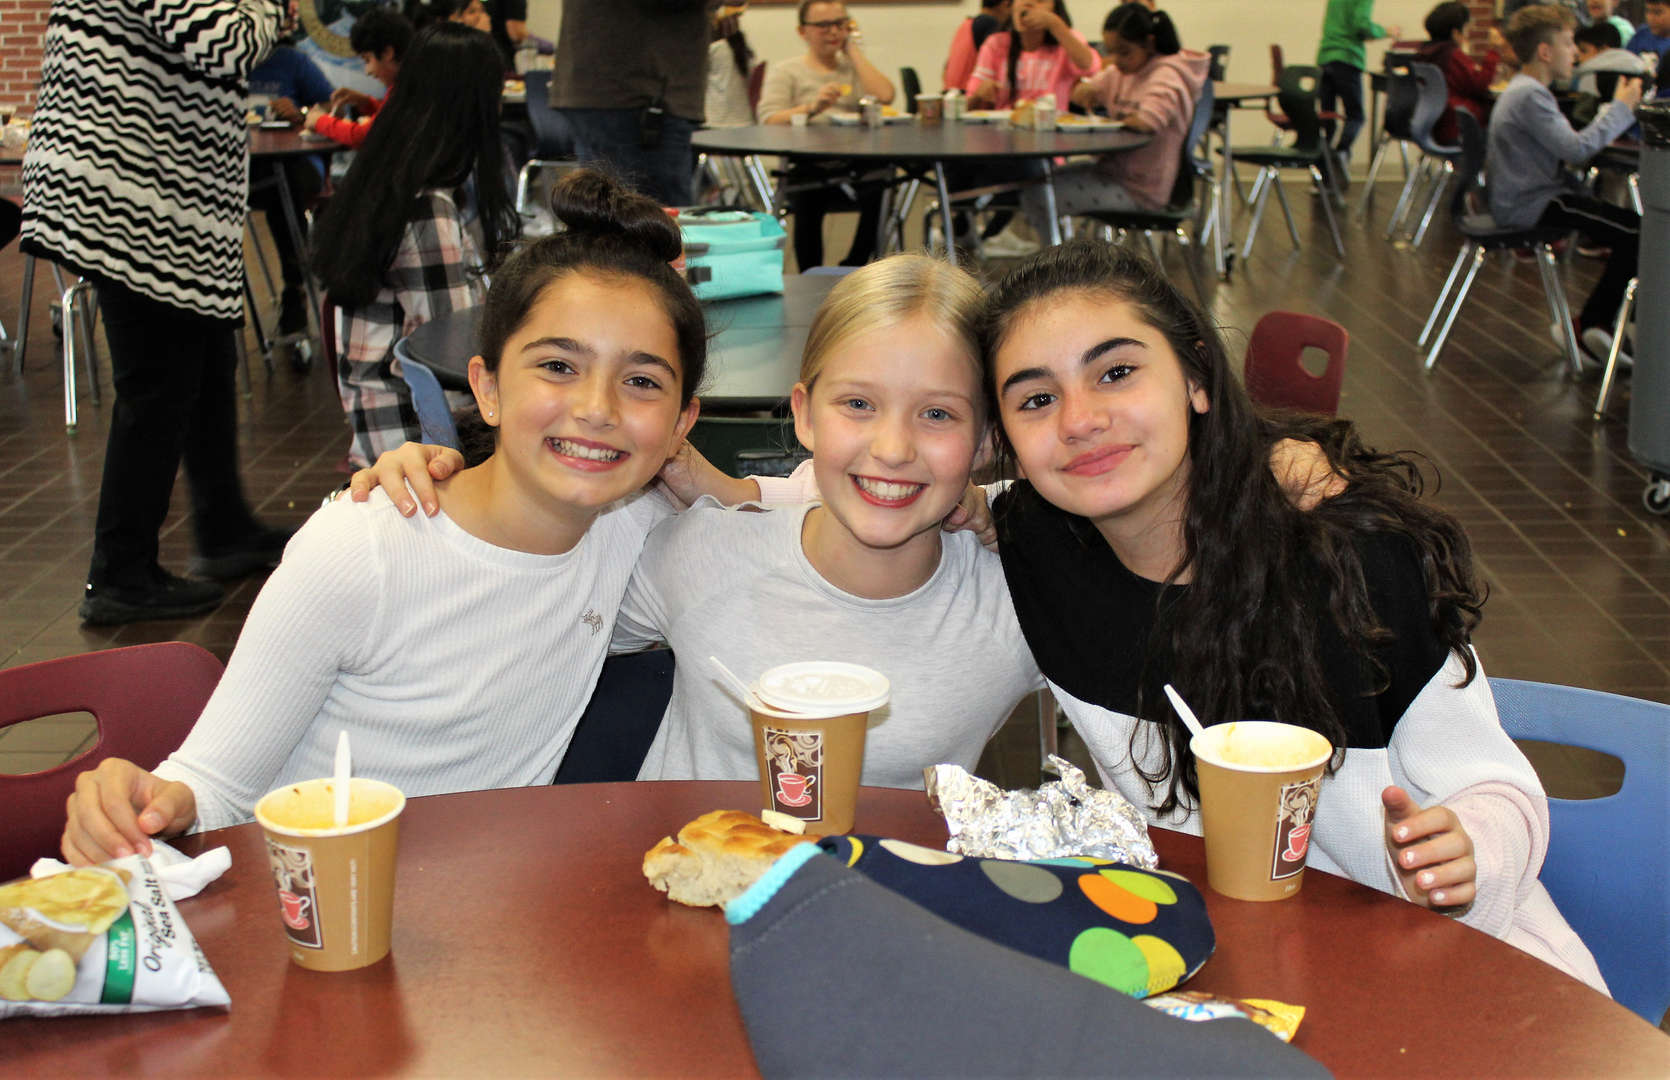 Three girls eat soup in the cafeteria.